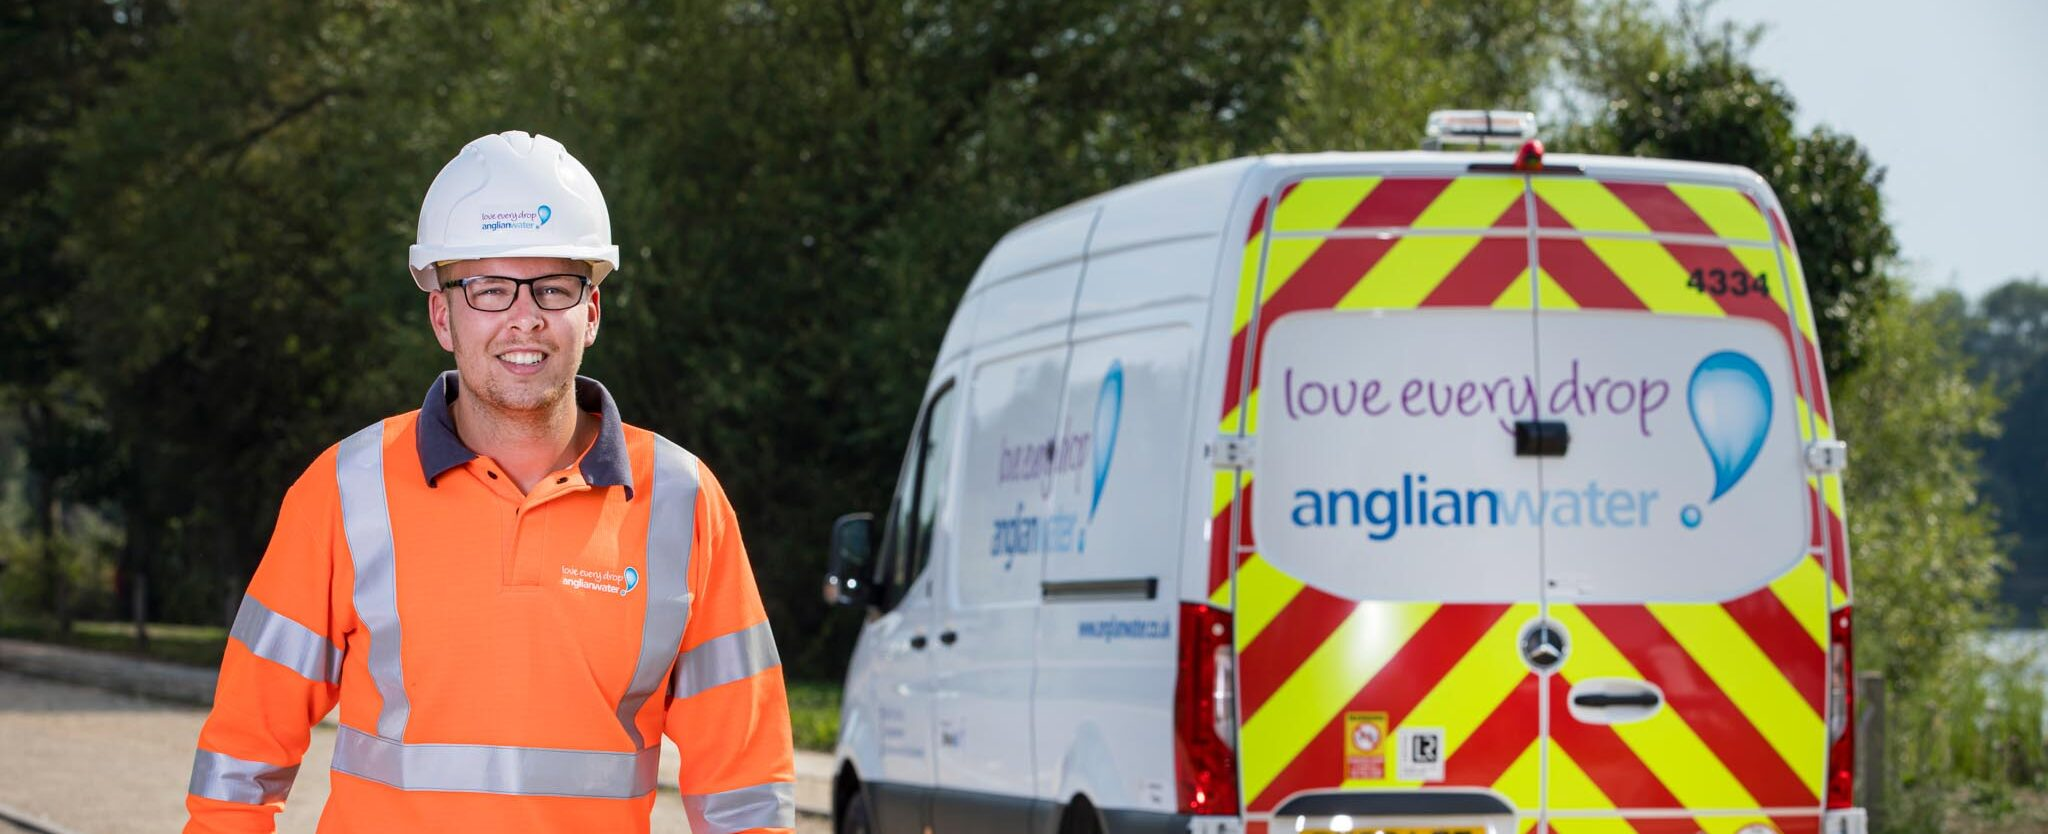 We're Hiring - Join our Anglian Water team  - Clancy